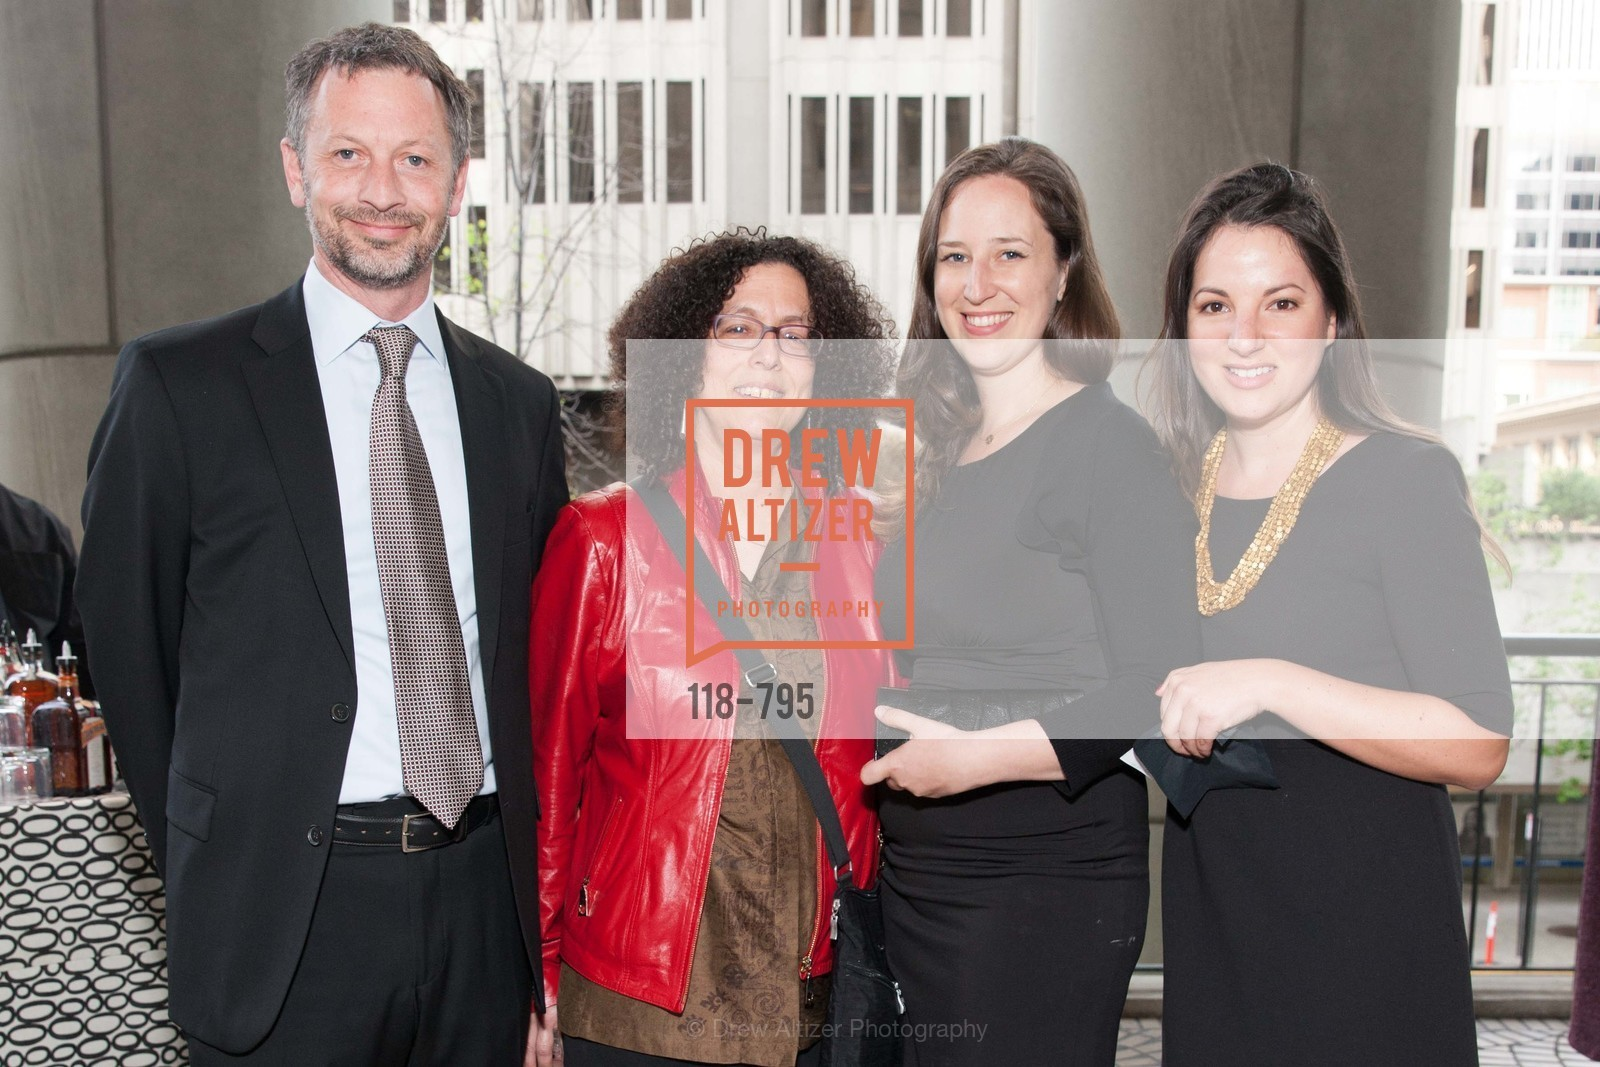 Jeff Cain, Susan Reider, Carla Praglin, Lindsey Schwartz, COMPASS FAMILY SERVICES Annual Spring Benefit:  Every Family Needs A Home, US, April 23rd, 2015,Drew Altizer, Drew Altizer Photography, full-service agency, private events, San Francisco photographer, photographer california